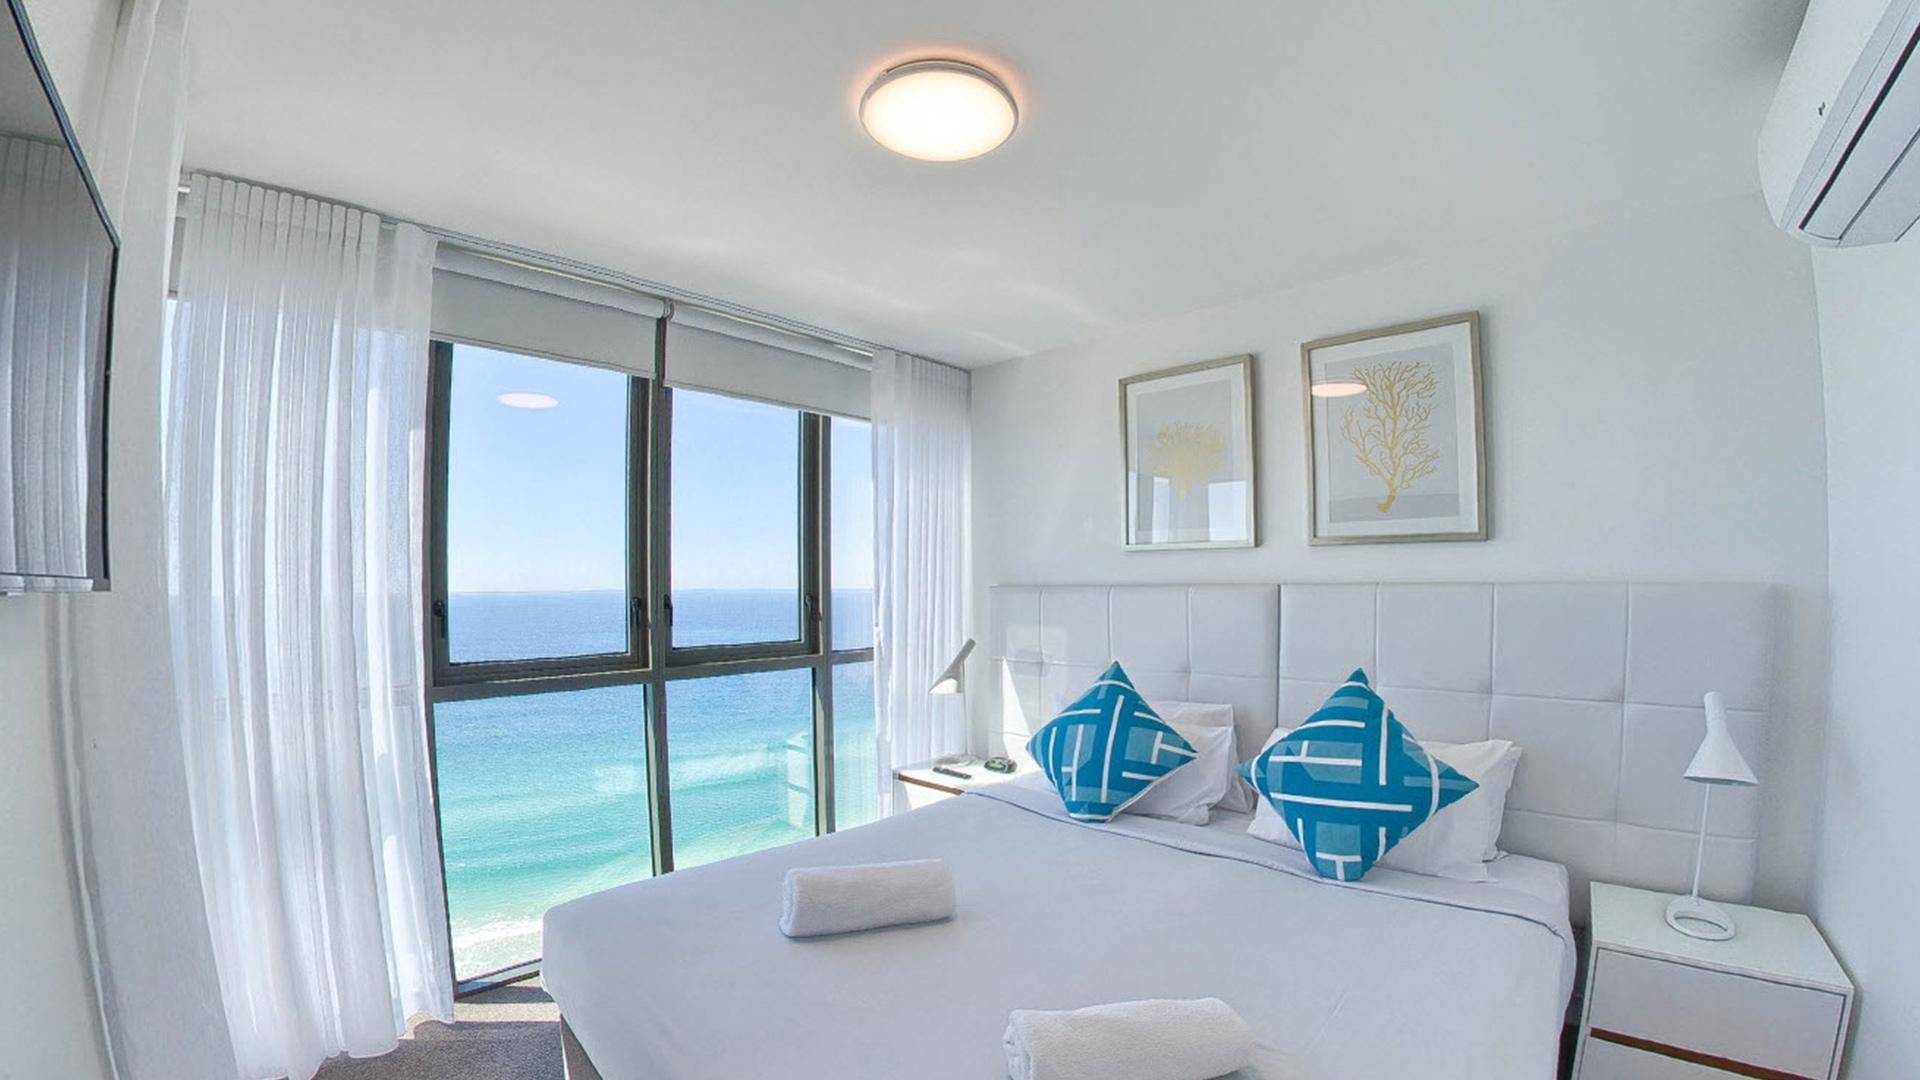 Two-Bedroom High Ocean View Apartment - 3 Nights image 1 at Rhapsody Resort by City of Gold Coast, Queensland, Australia